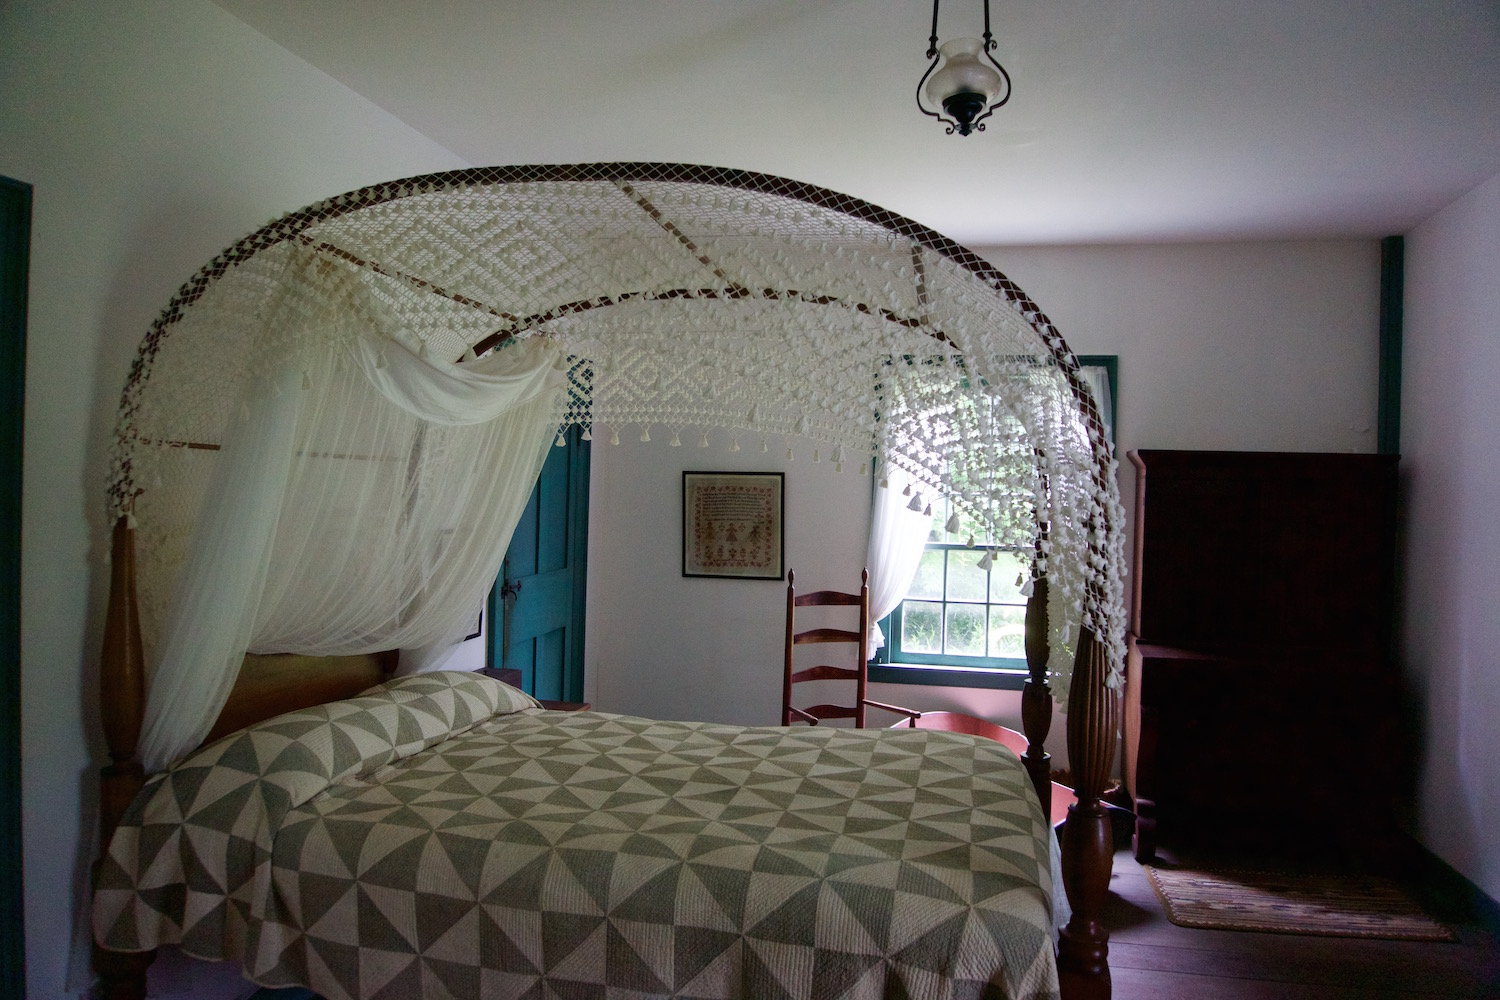 Bed with lace canopy